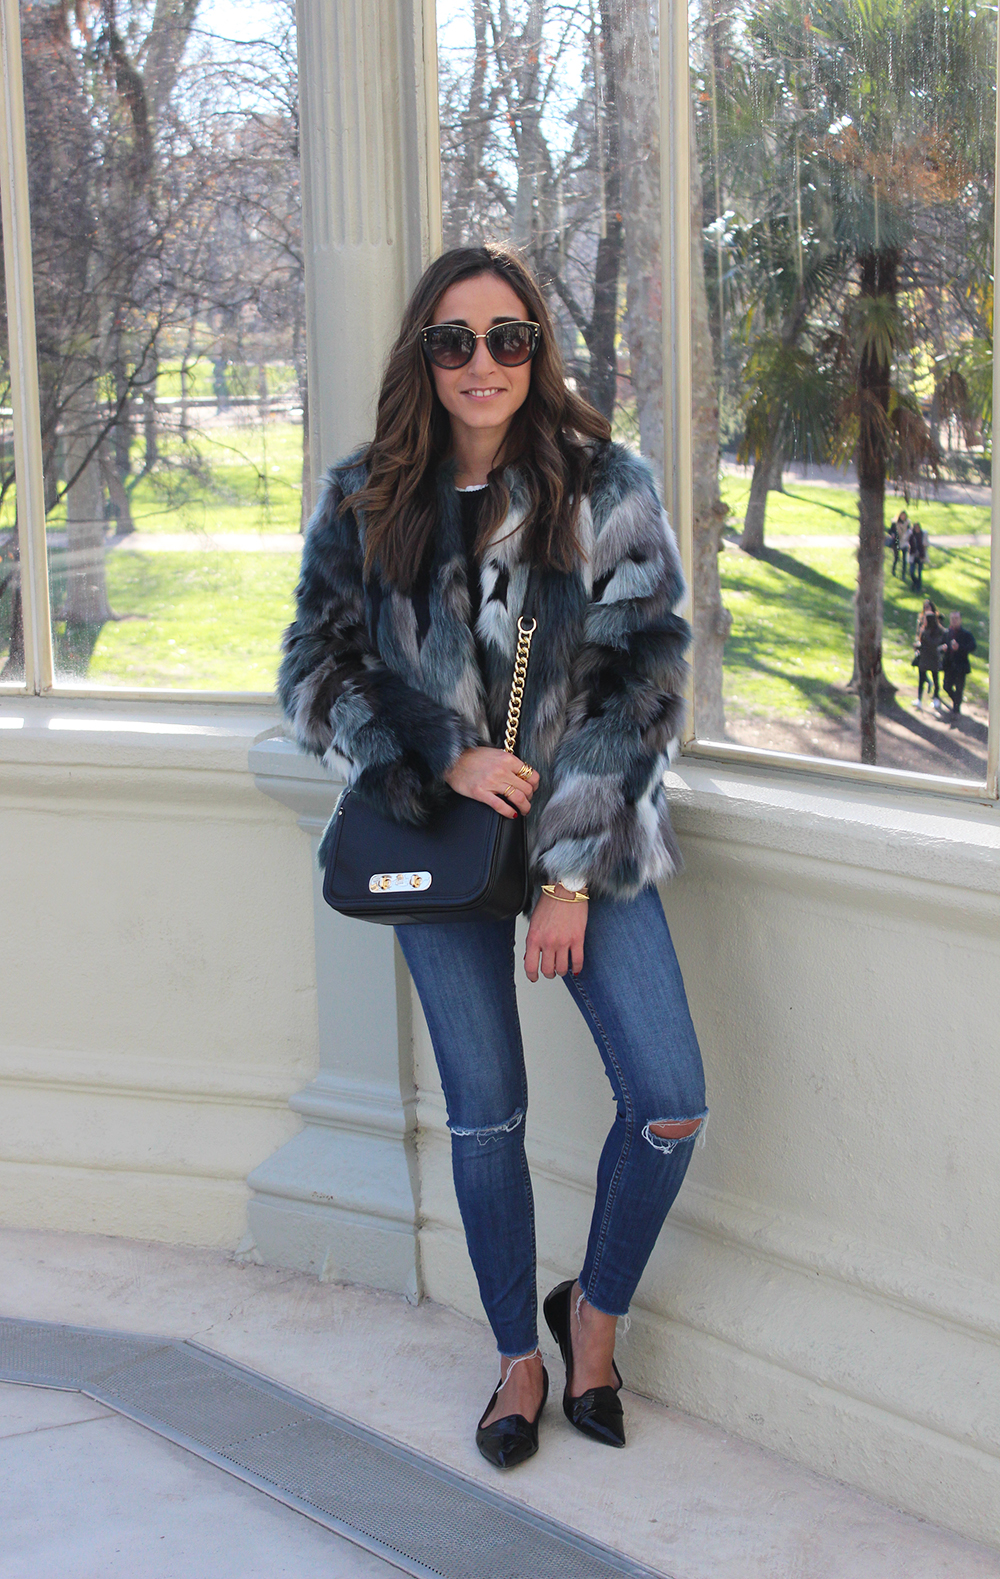 faux fur coat jeans pretty ballerinas black flats coach bag casual outfit fashion style06